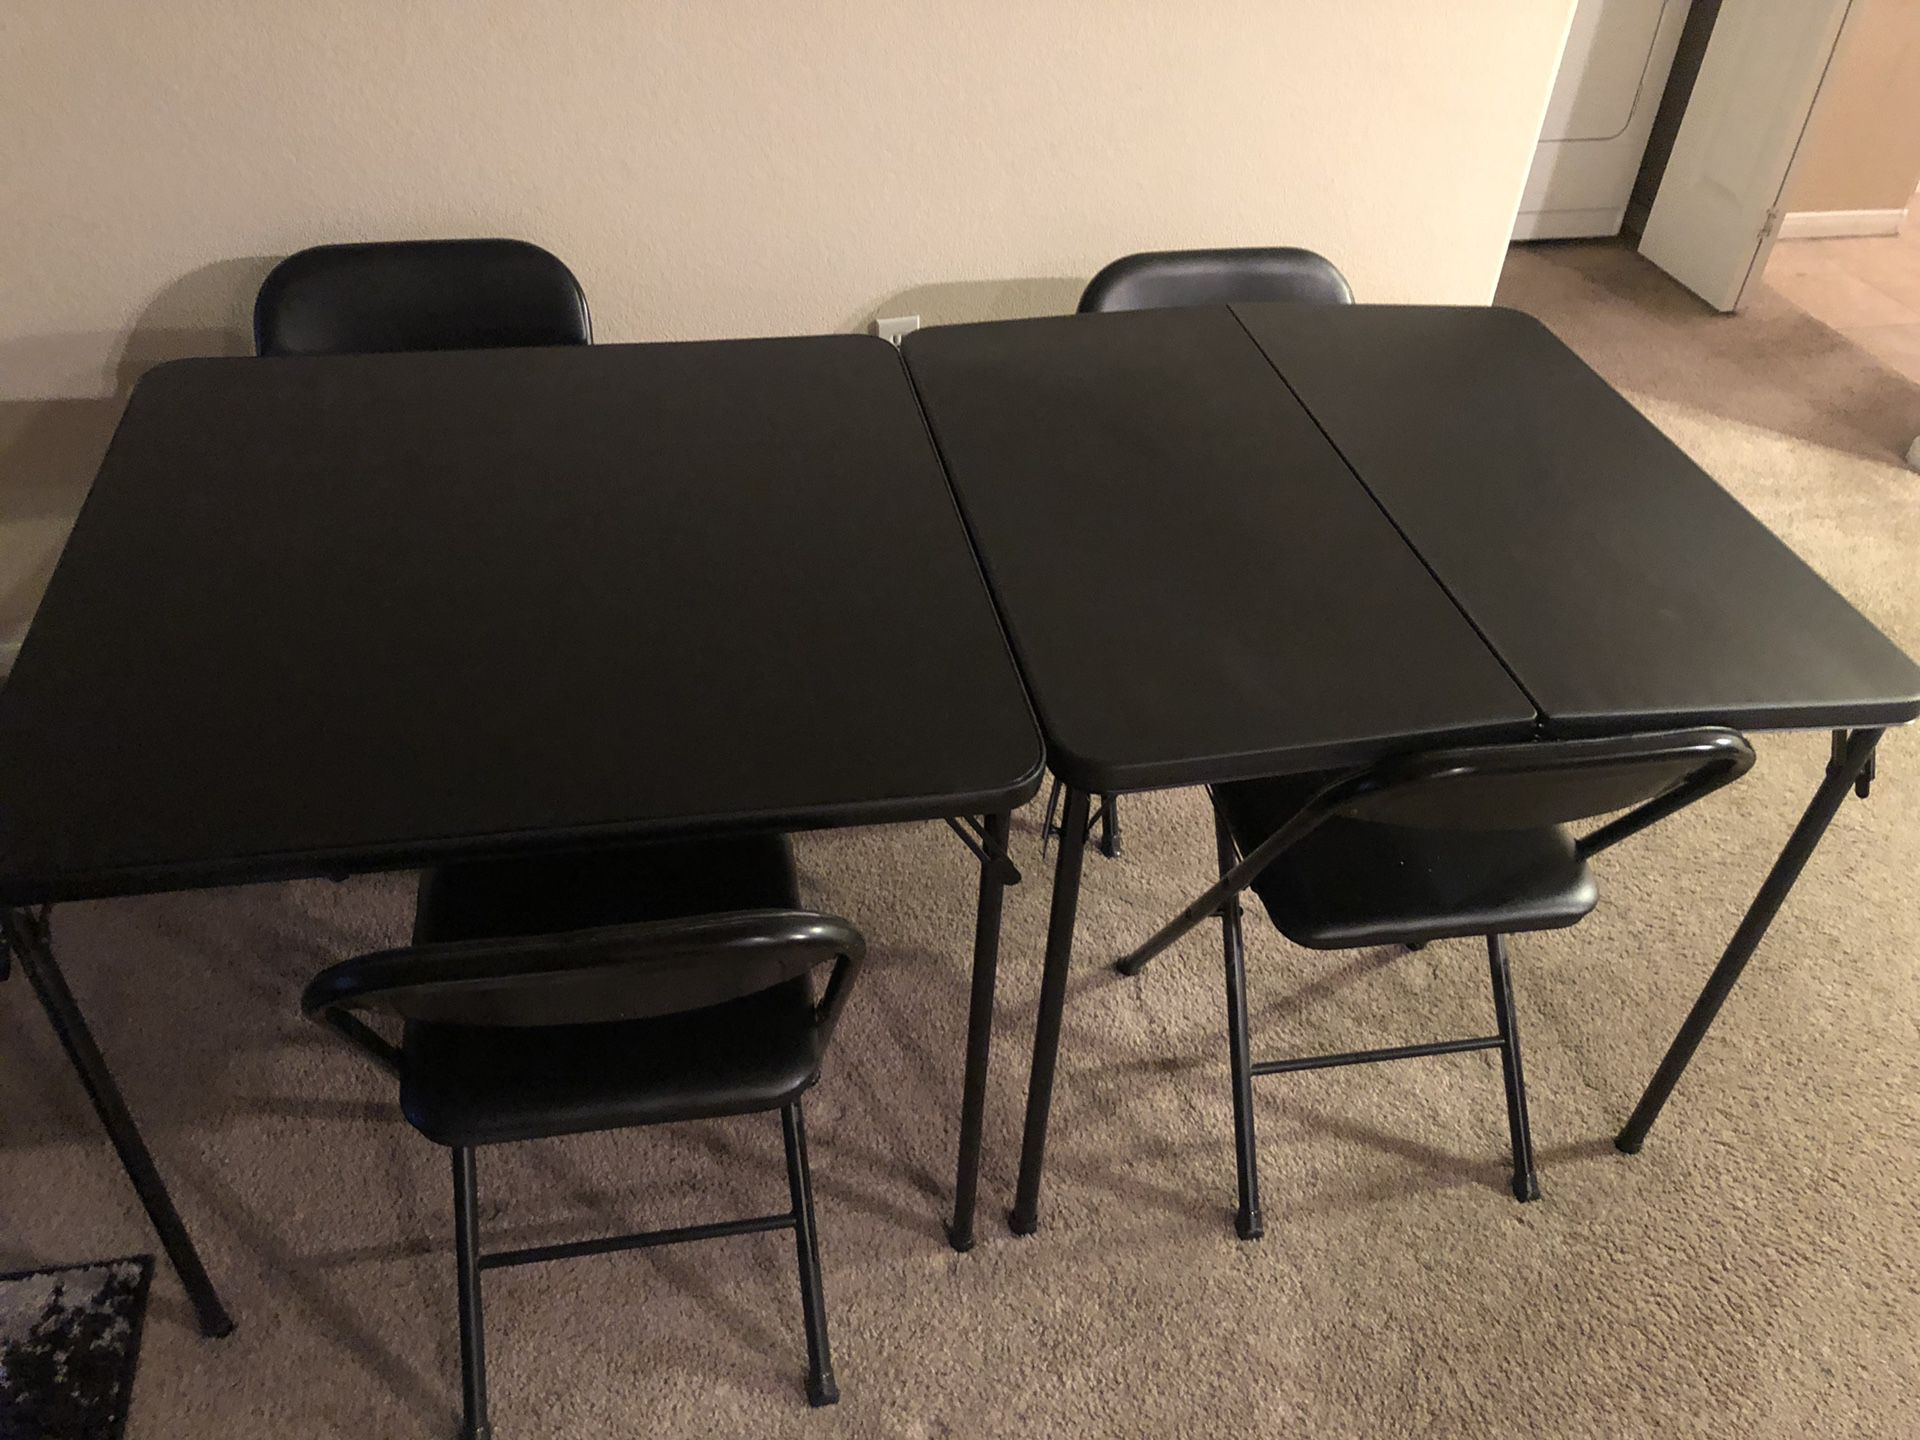 2 Portable Tables + 4 chairs (Great Value!)